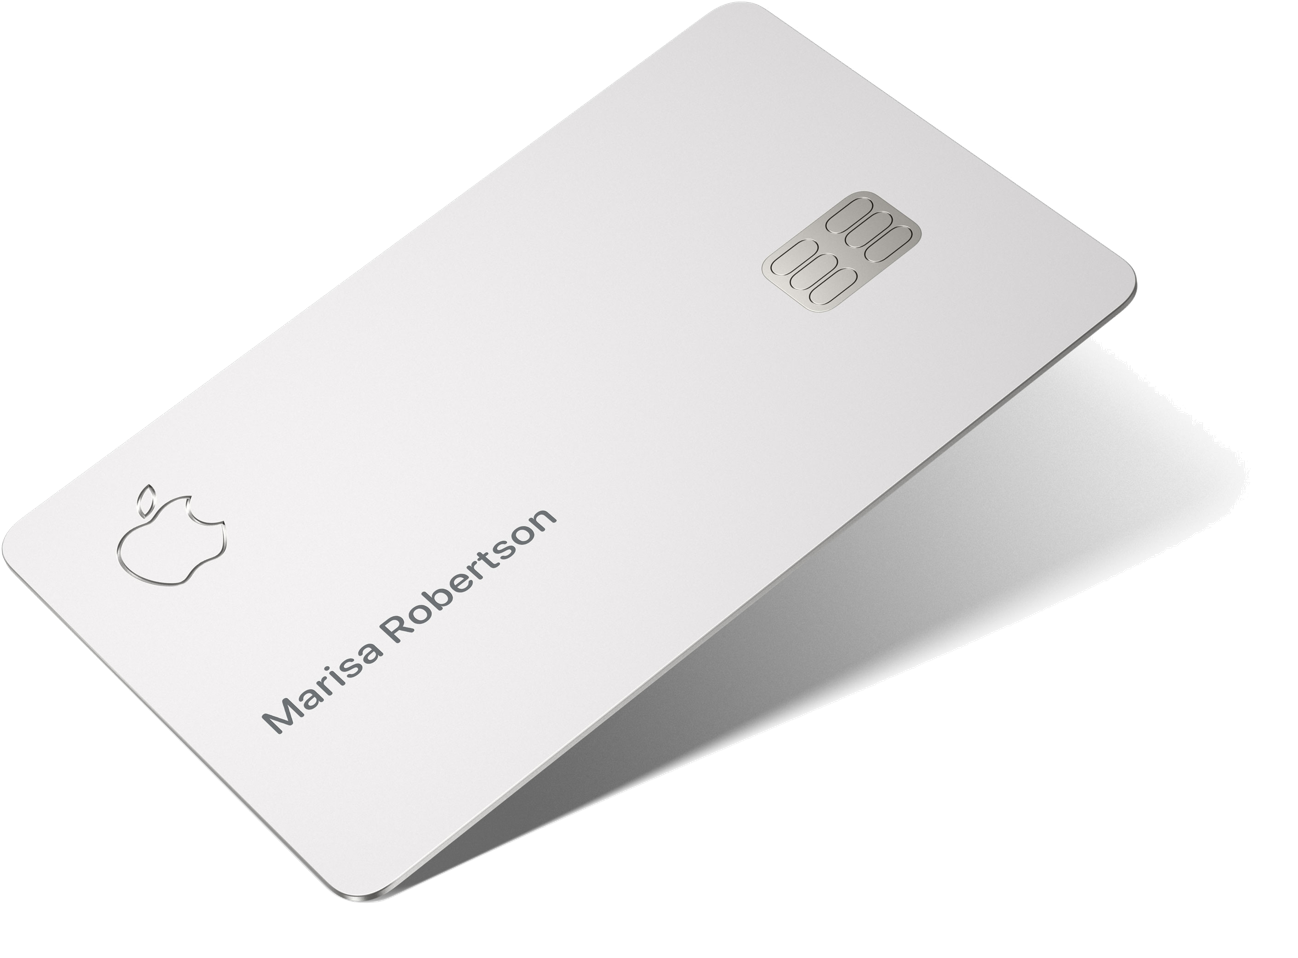 Apple Card hardware